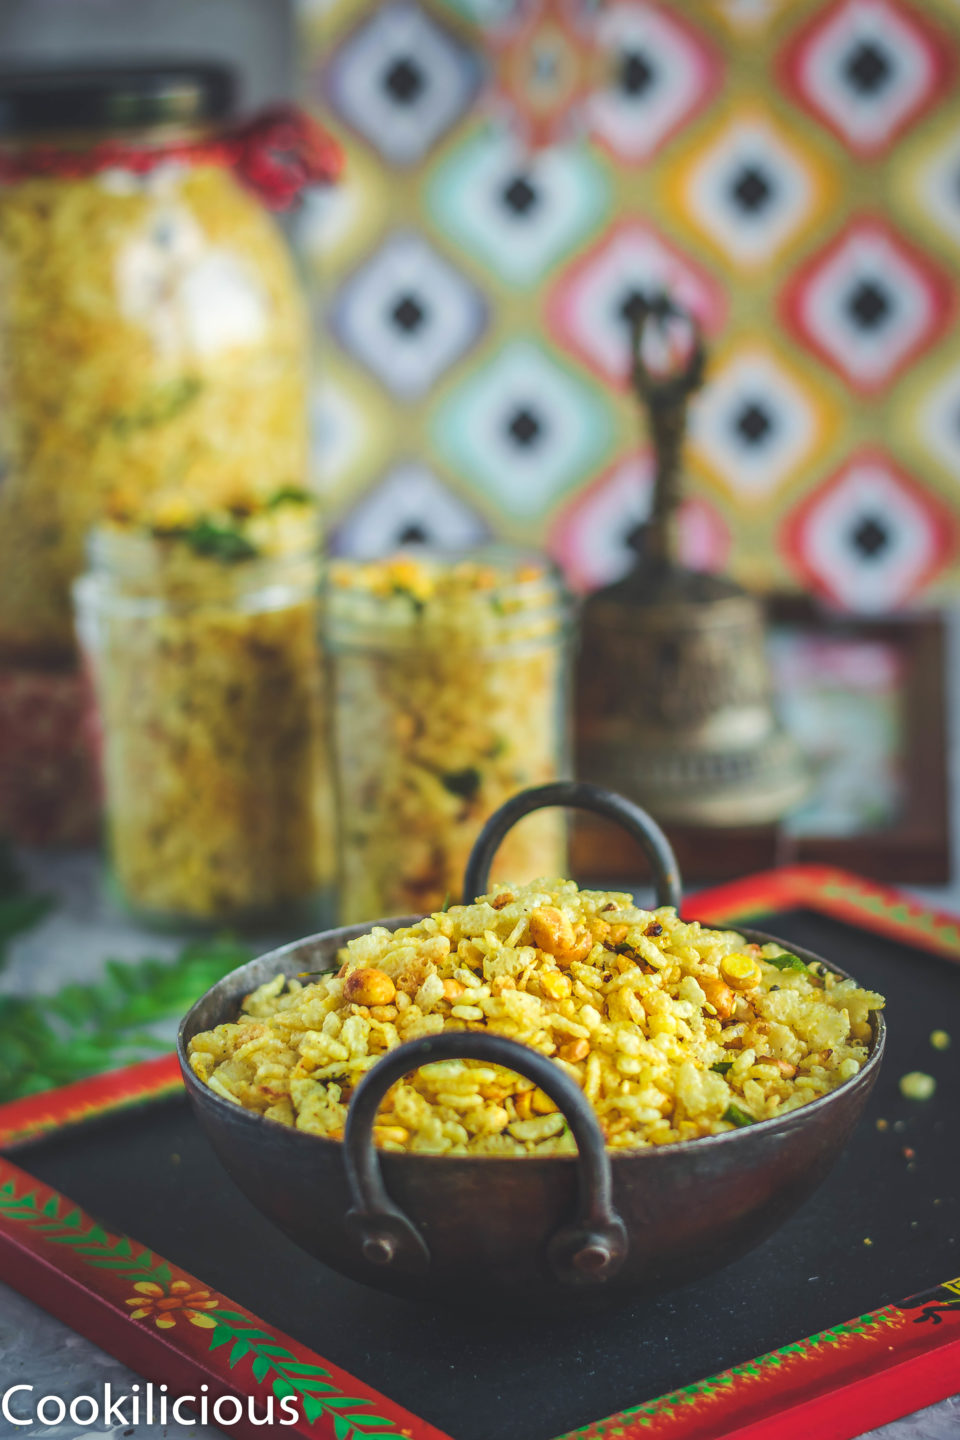 Rice Krispie Chivda in a kadai with 2 glass jars filled with the same in the background